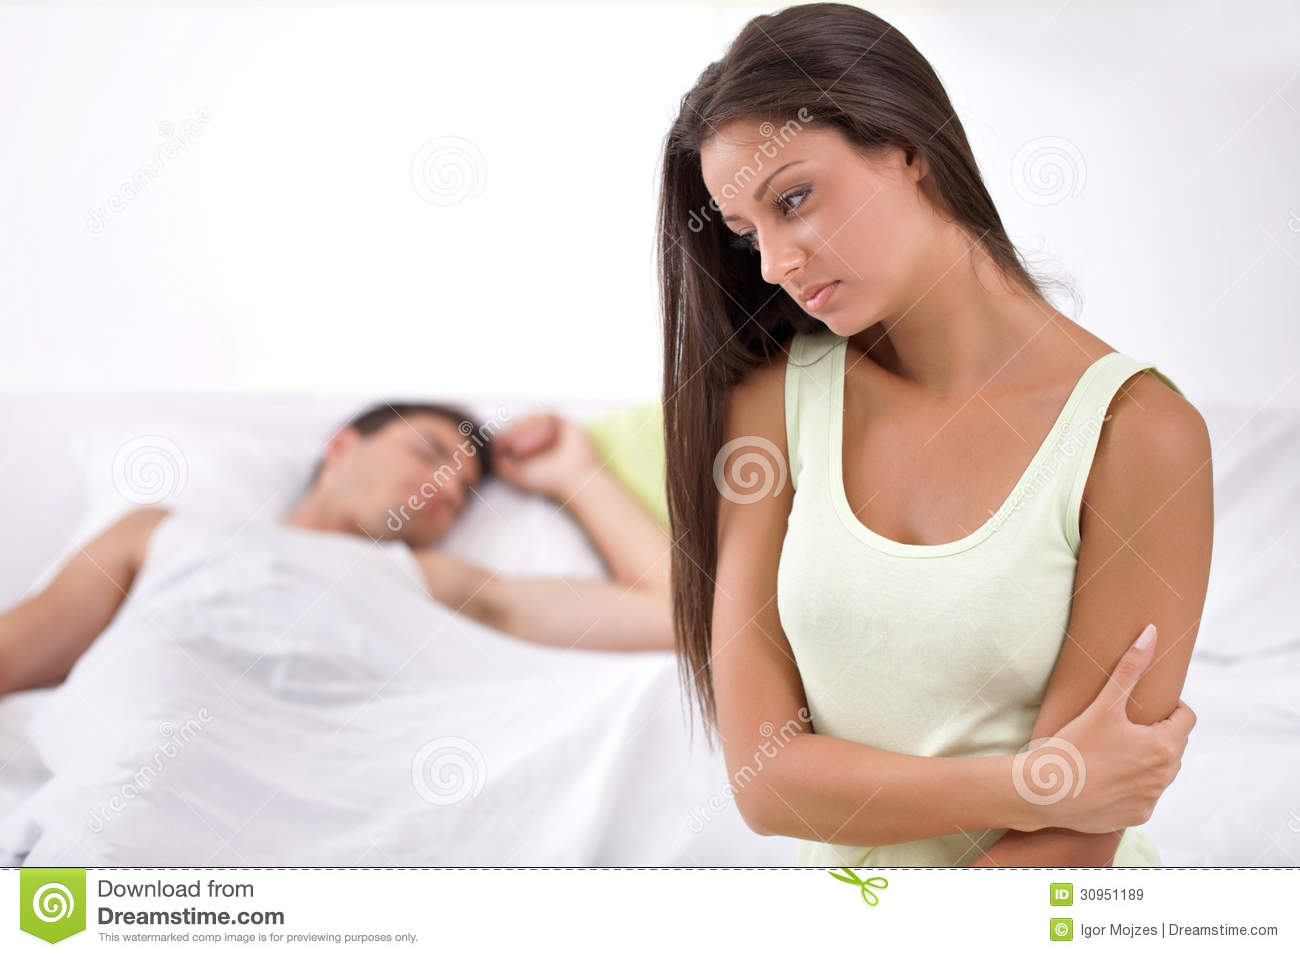 Unhappy young woman in bedroom